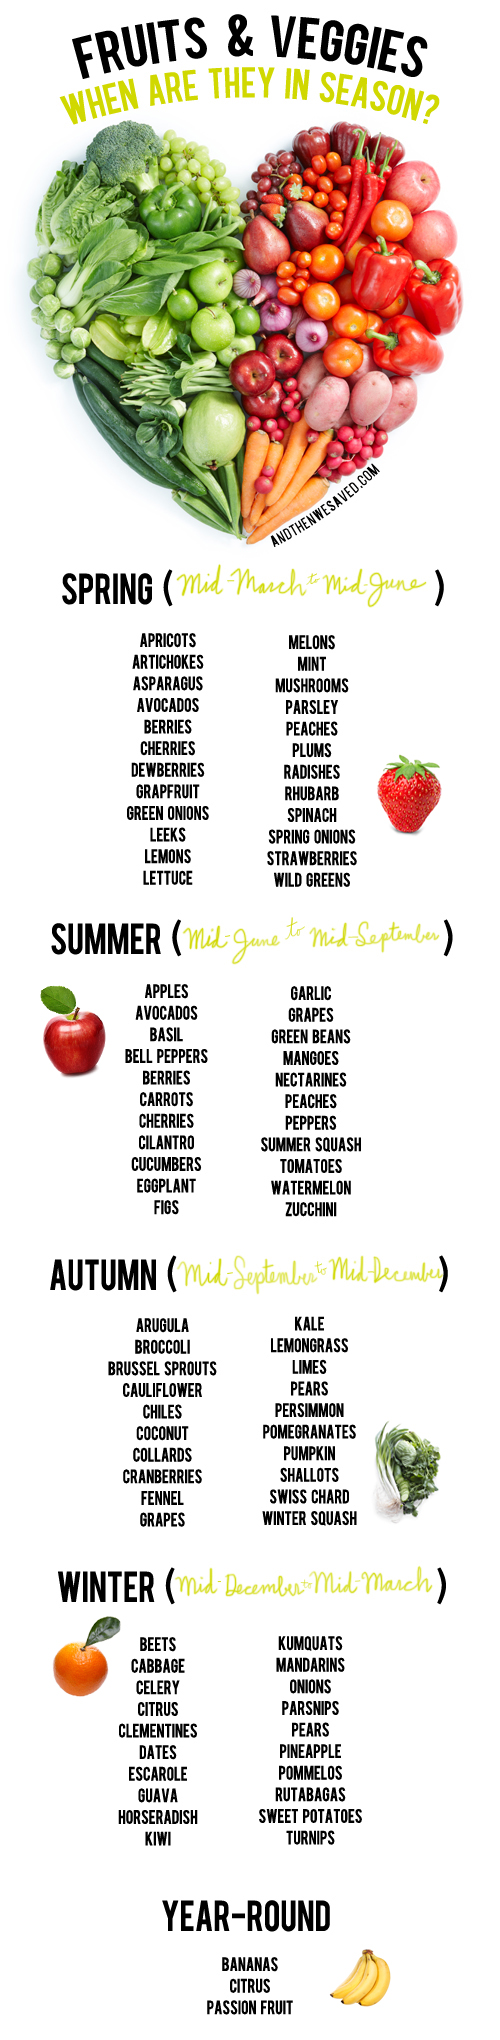 fruit and vegtable in season guide